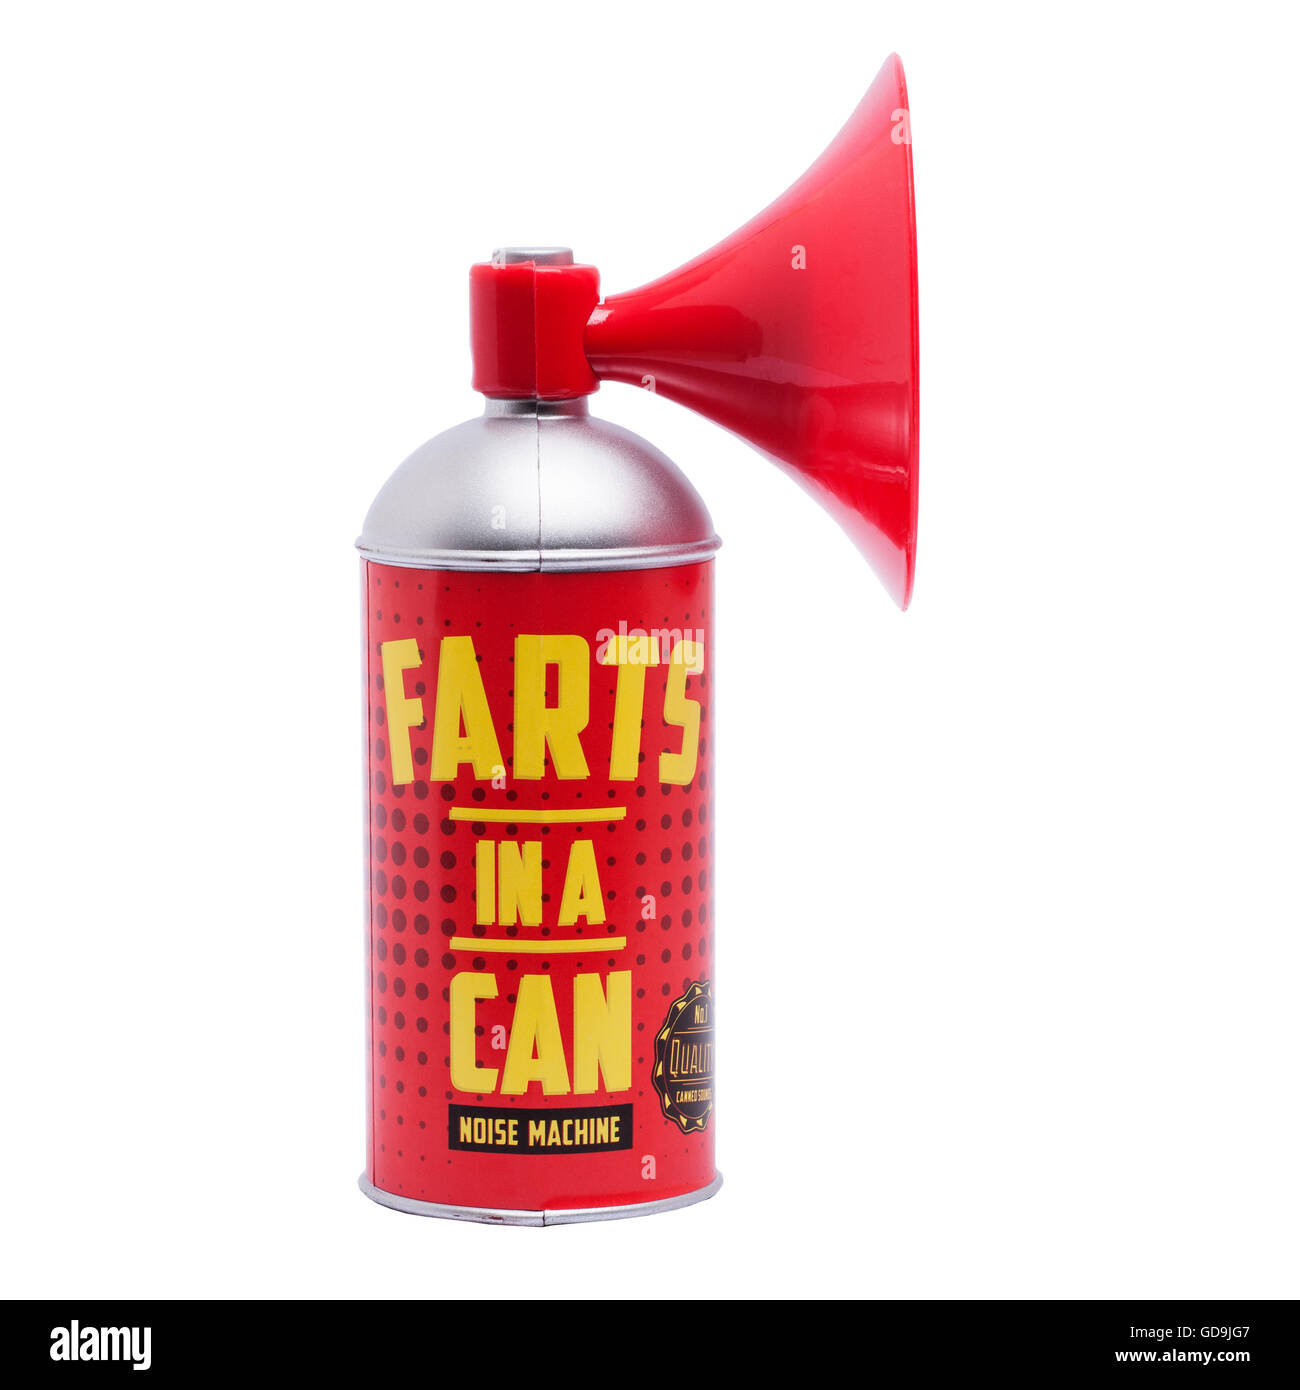 A tin of farts in a can on a white background - Stock Image